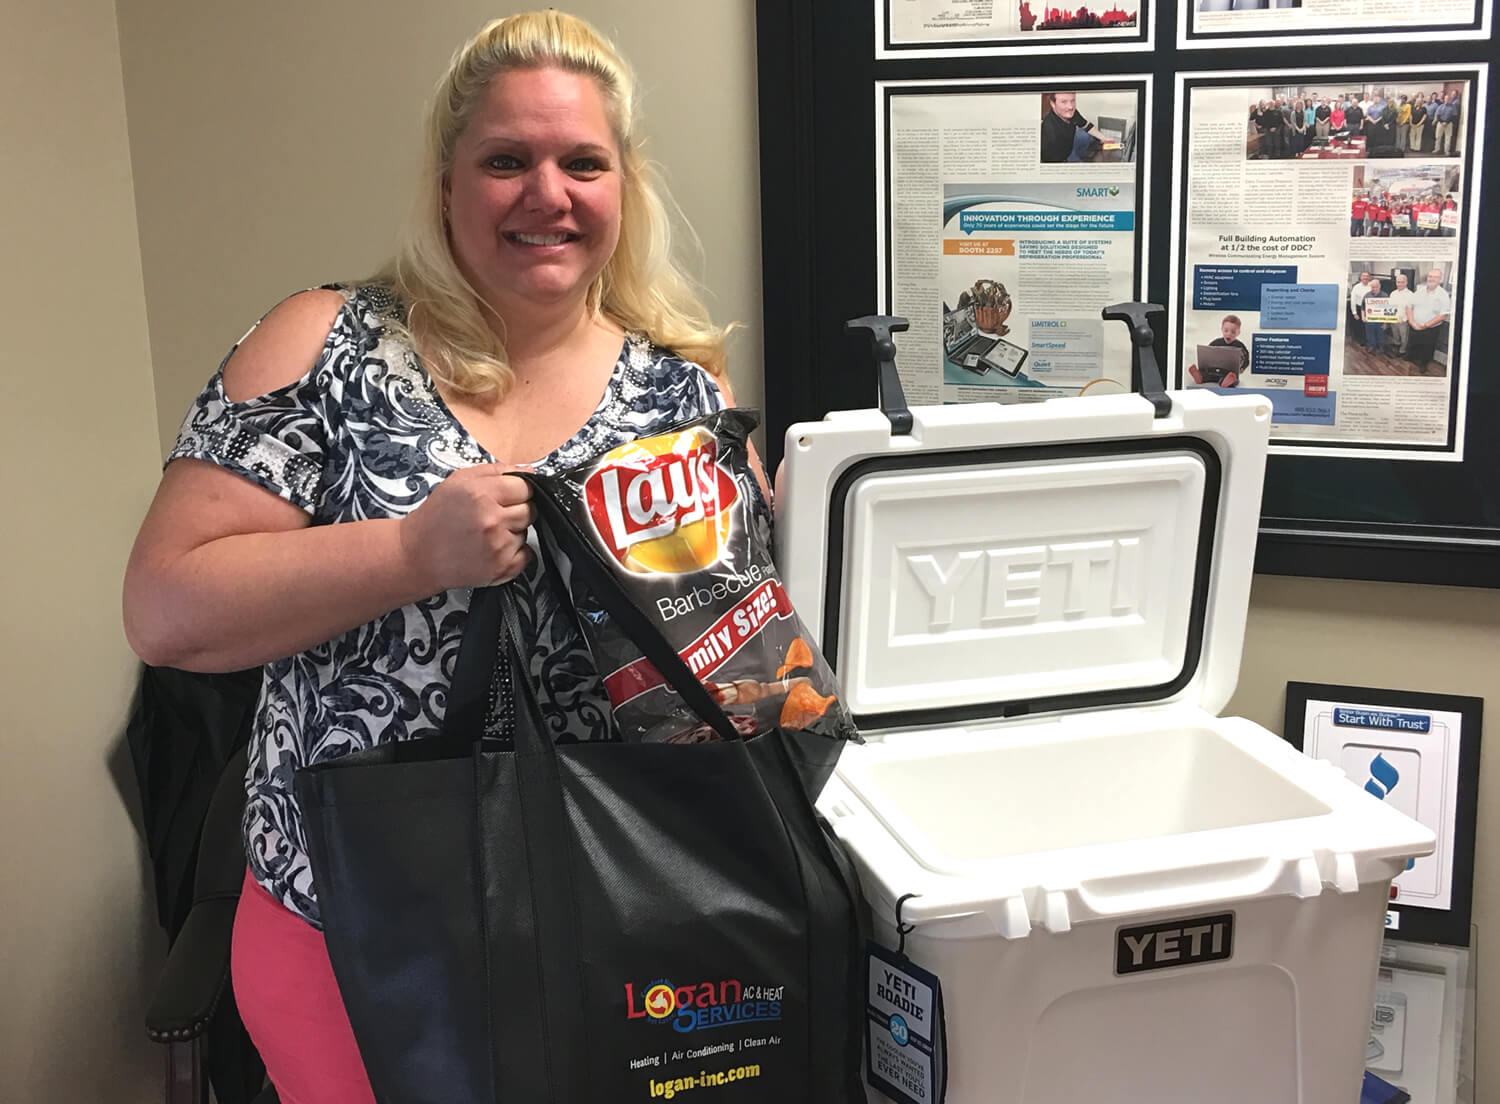 Kettering woman pictured with Yeti Cooler